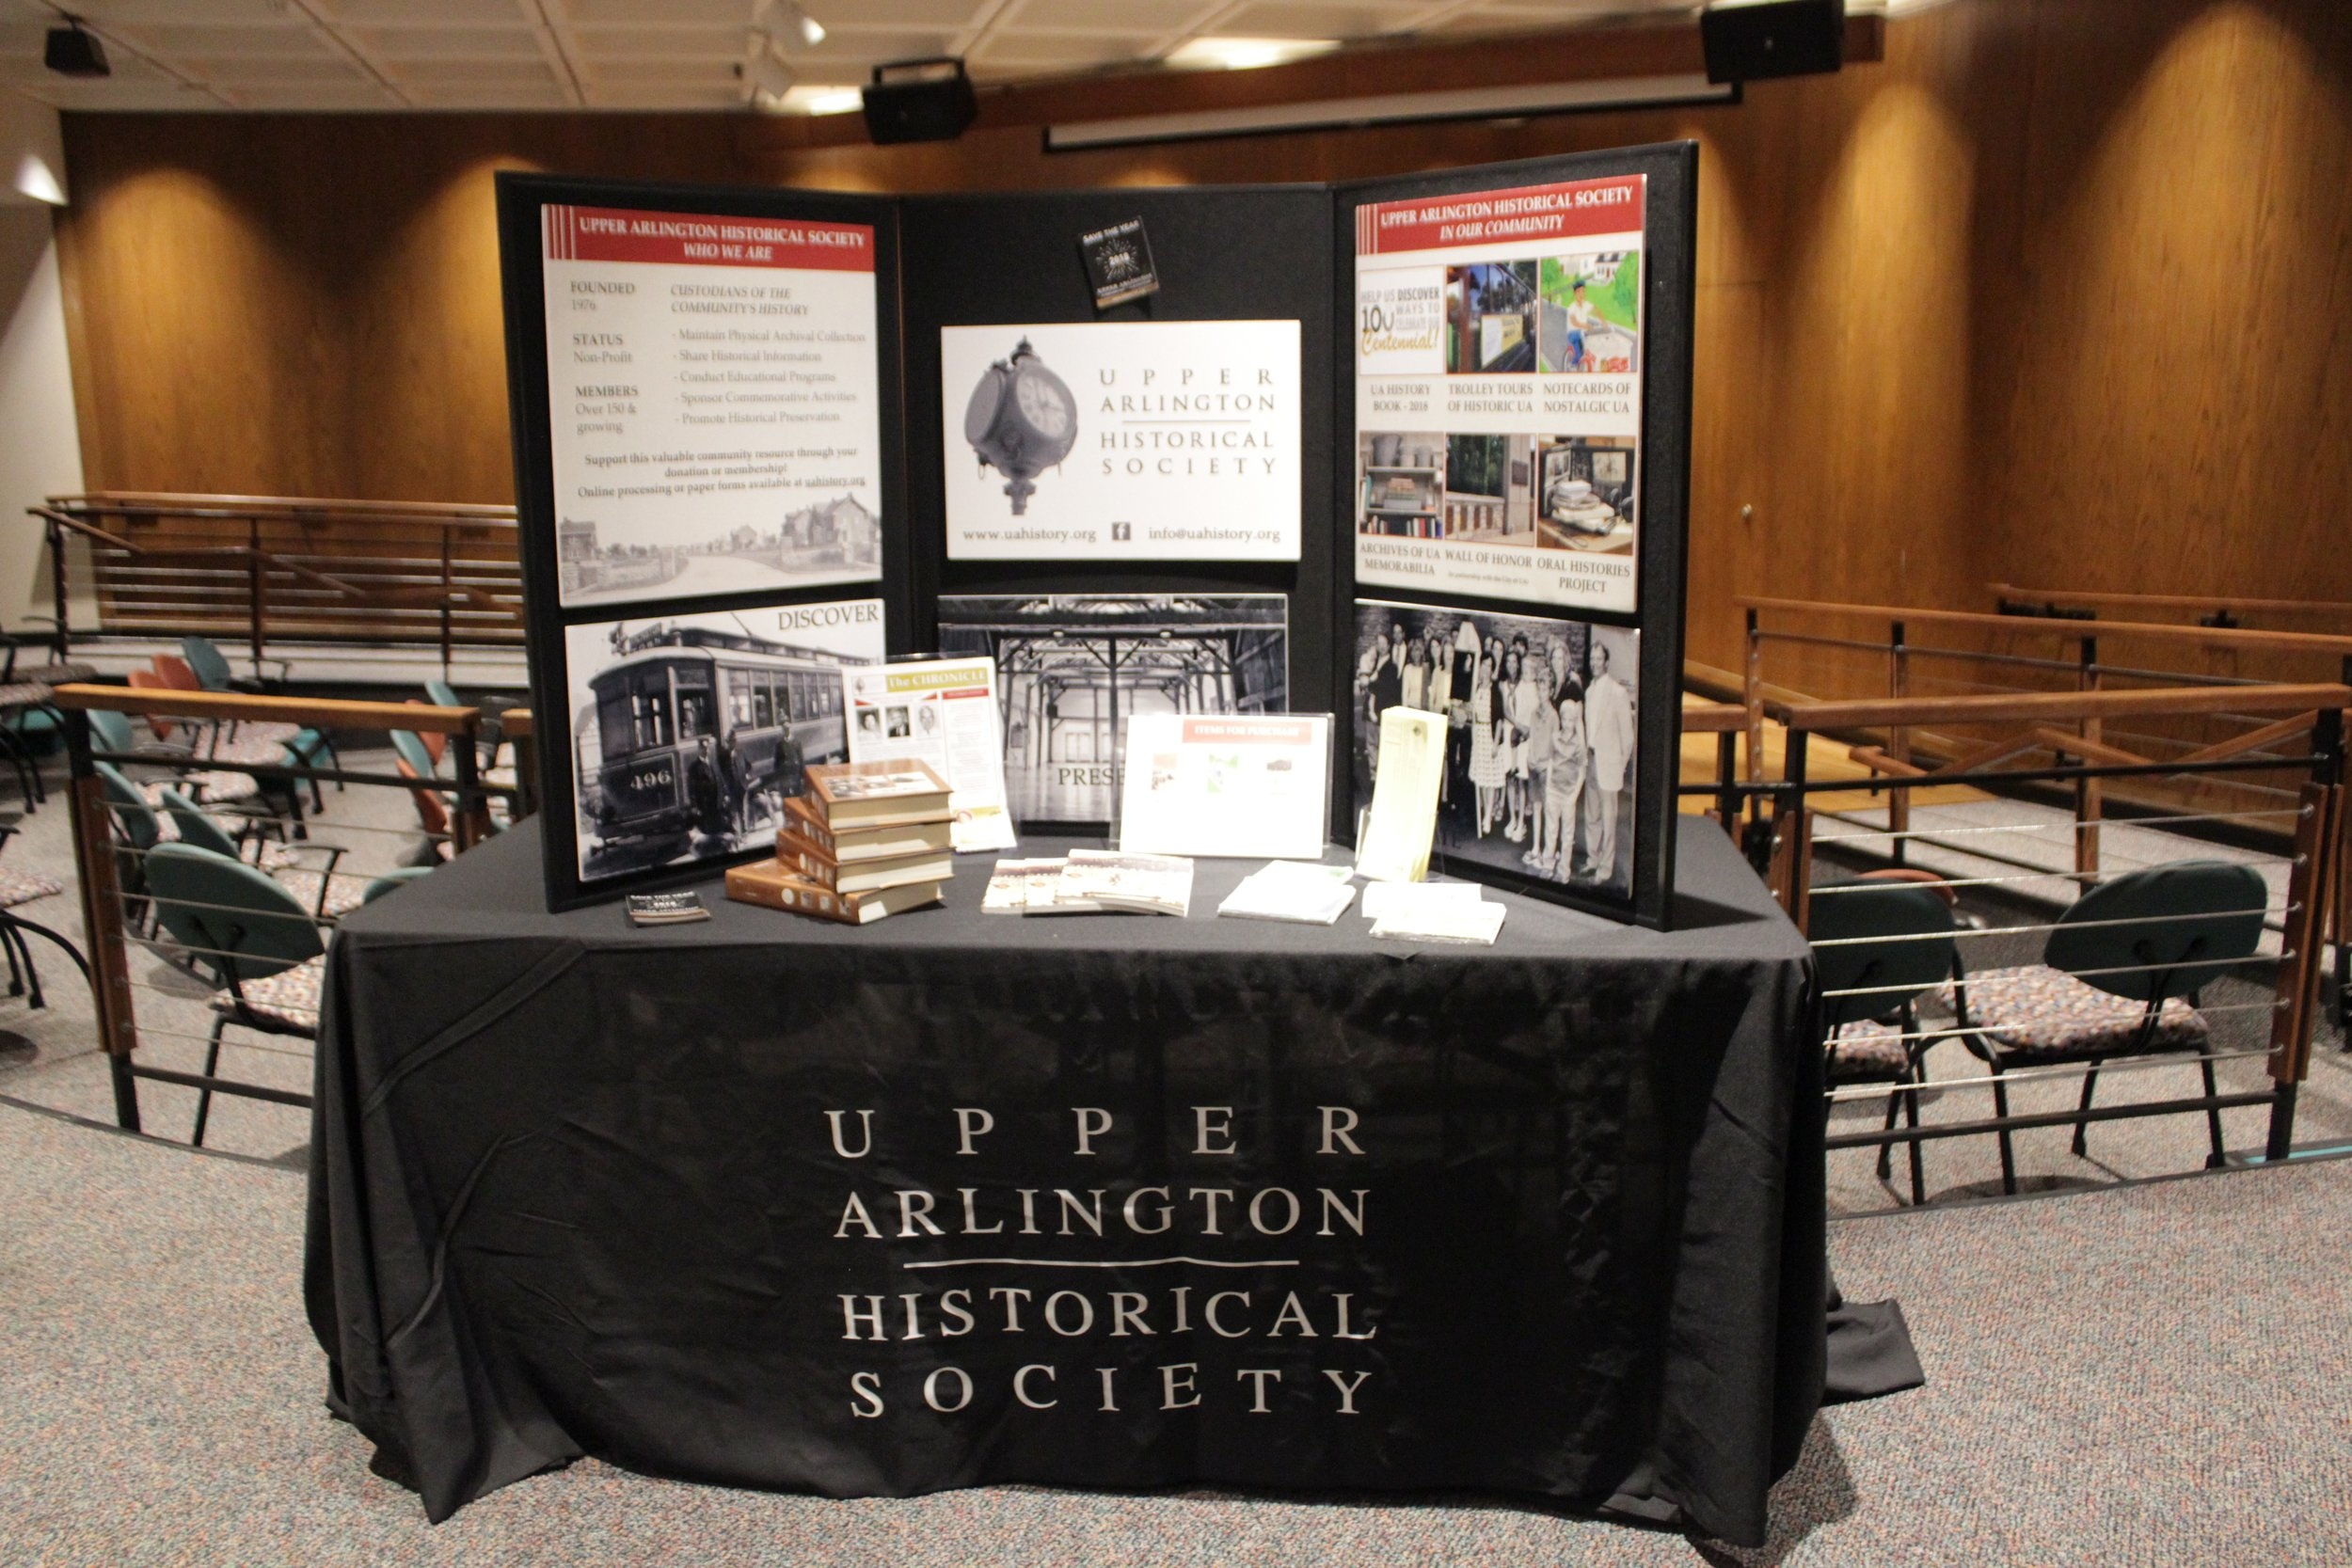 This new tri-fold display board and table skirting was purchased using funds generously donated by John & Kate Brody.